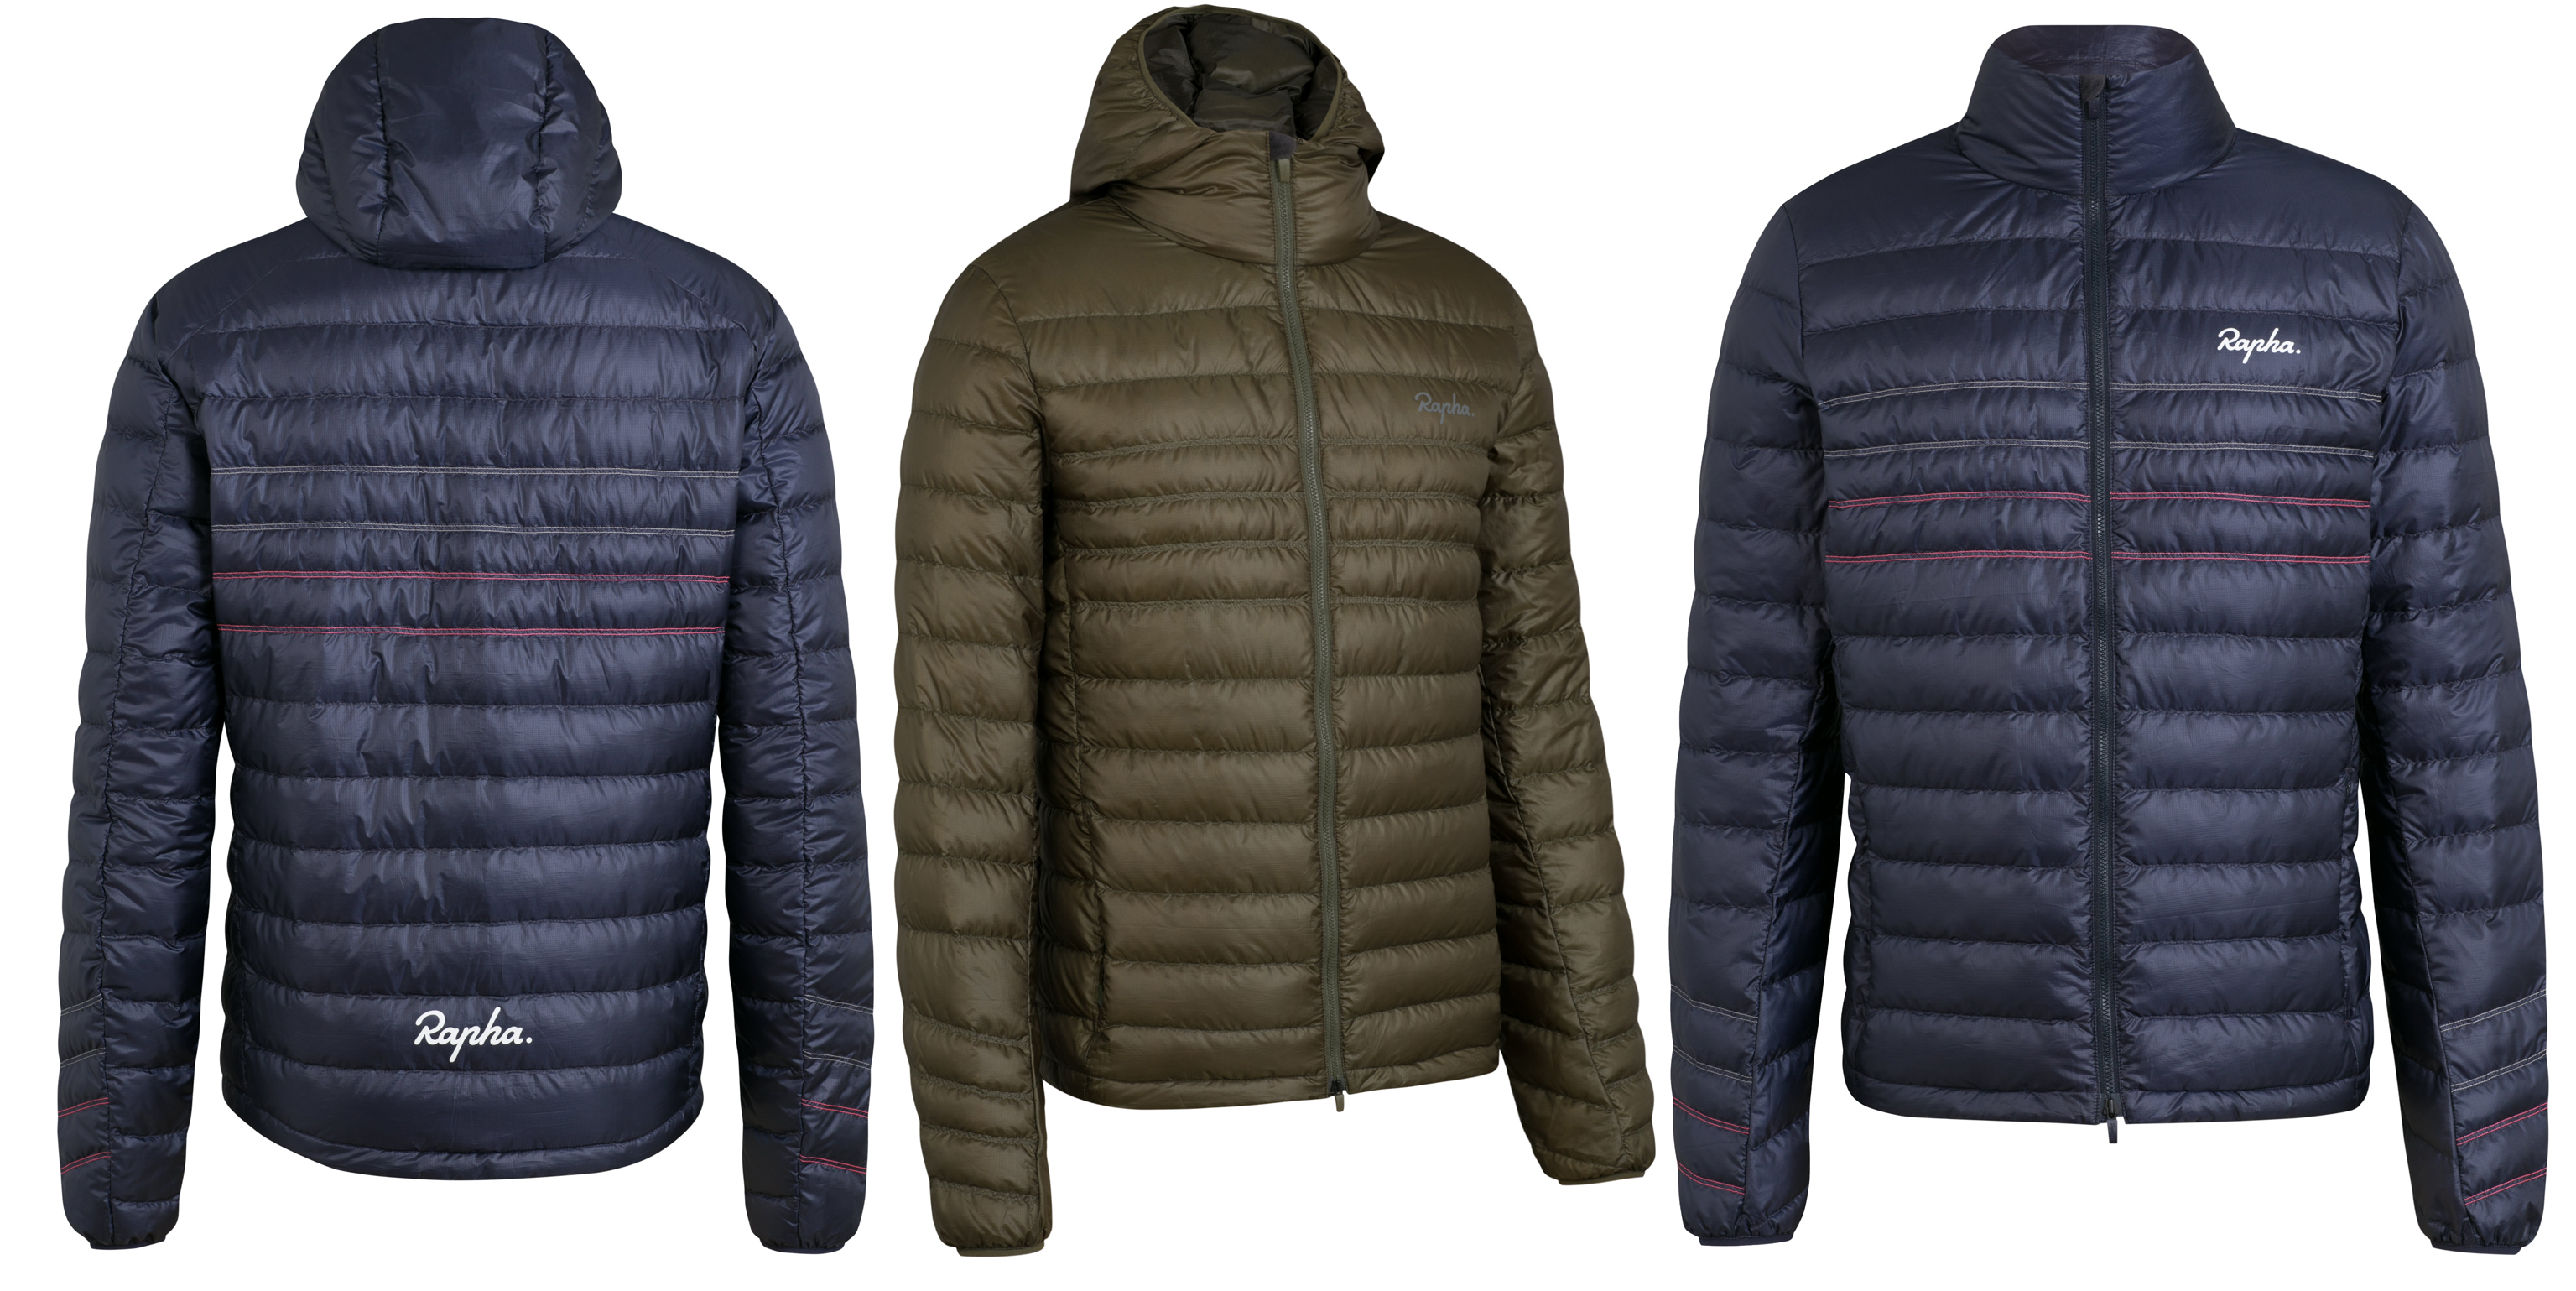 Rapha Down Jacket